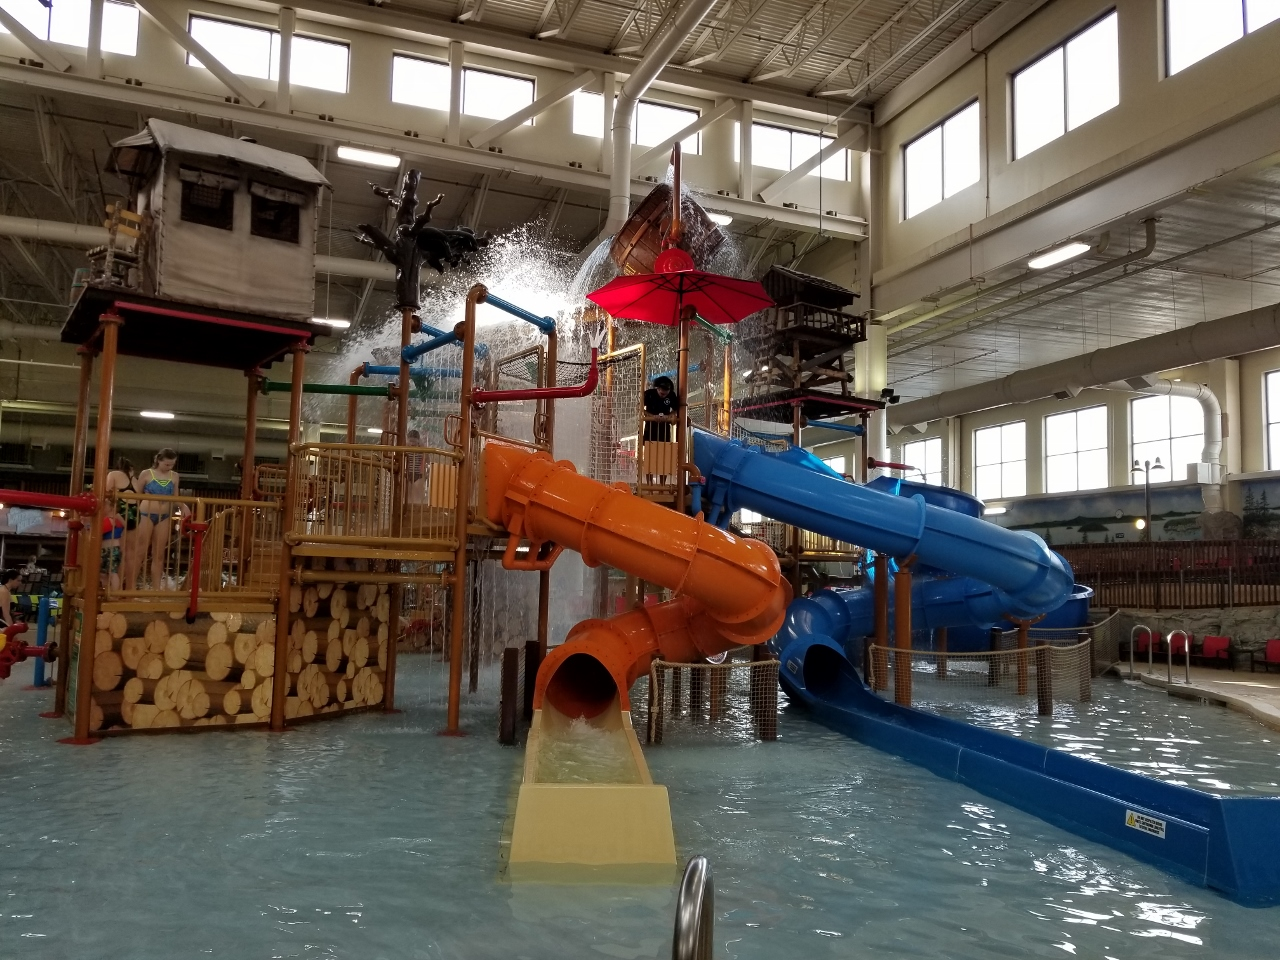 fort mackenzie great wolf lodge in bloomington mn